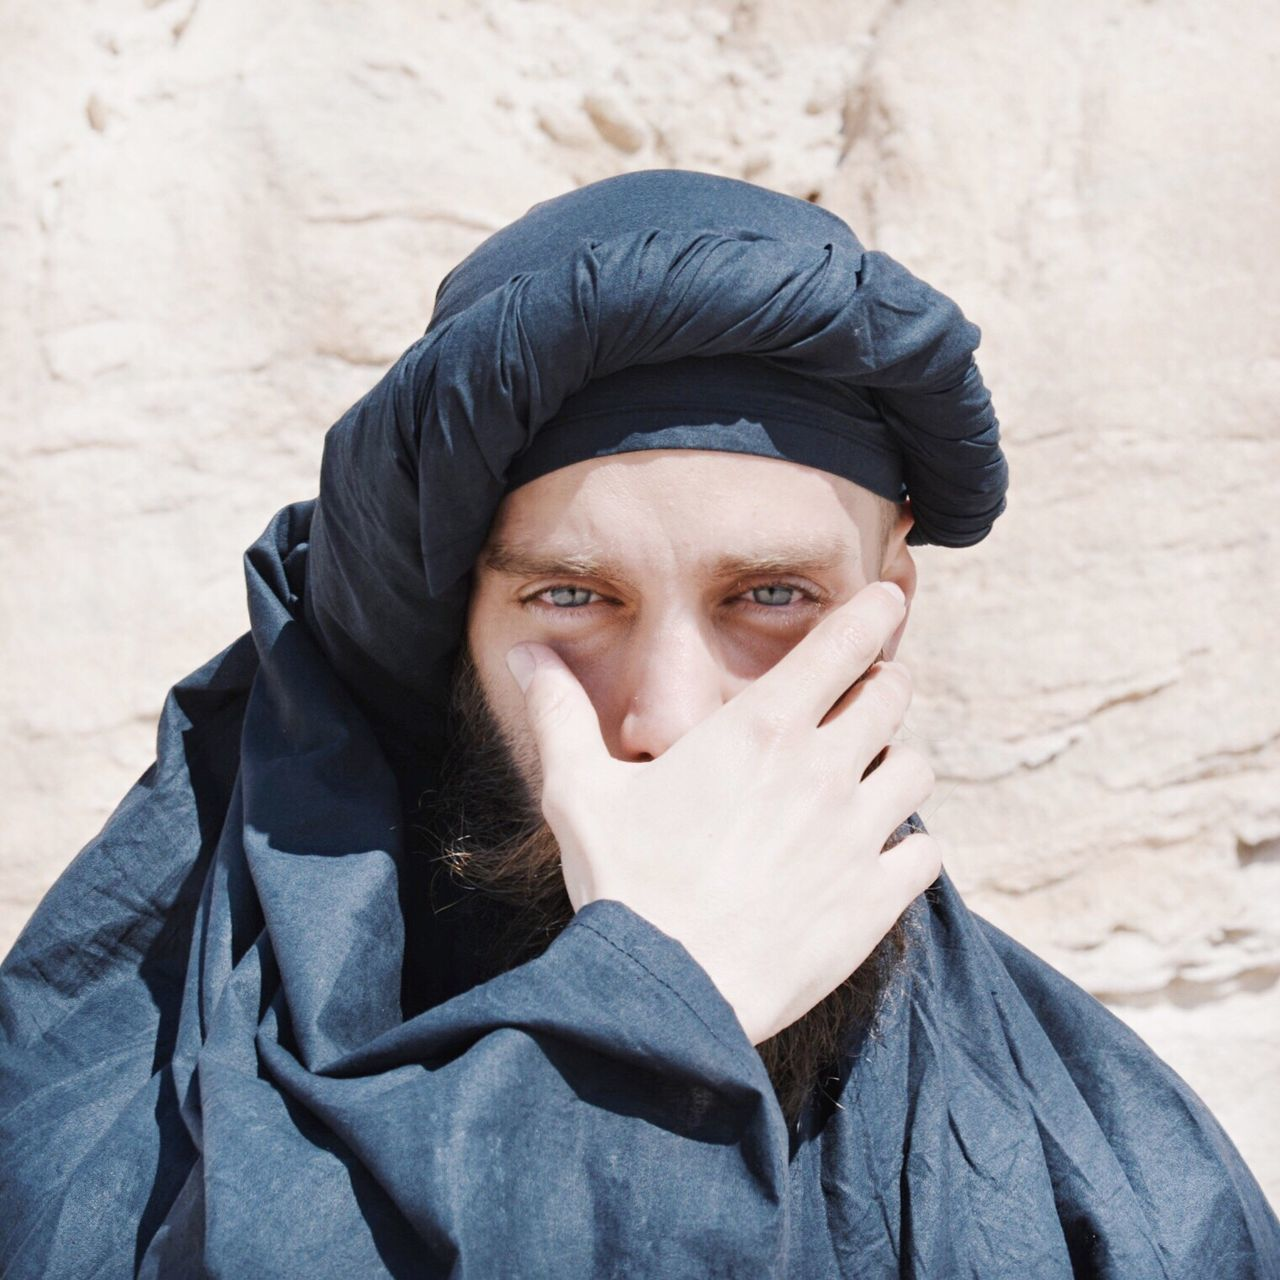 Portrait of man covering face during sunny day